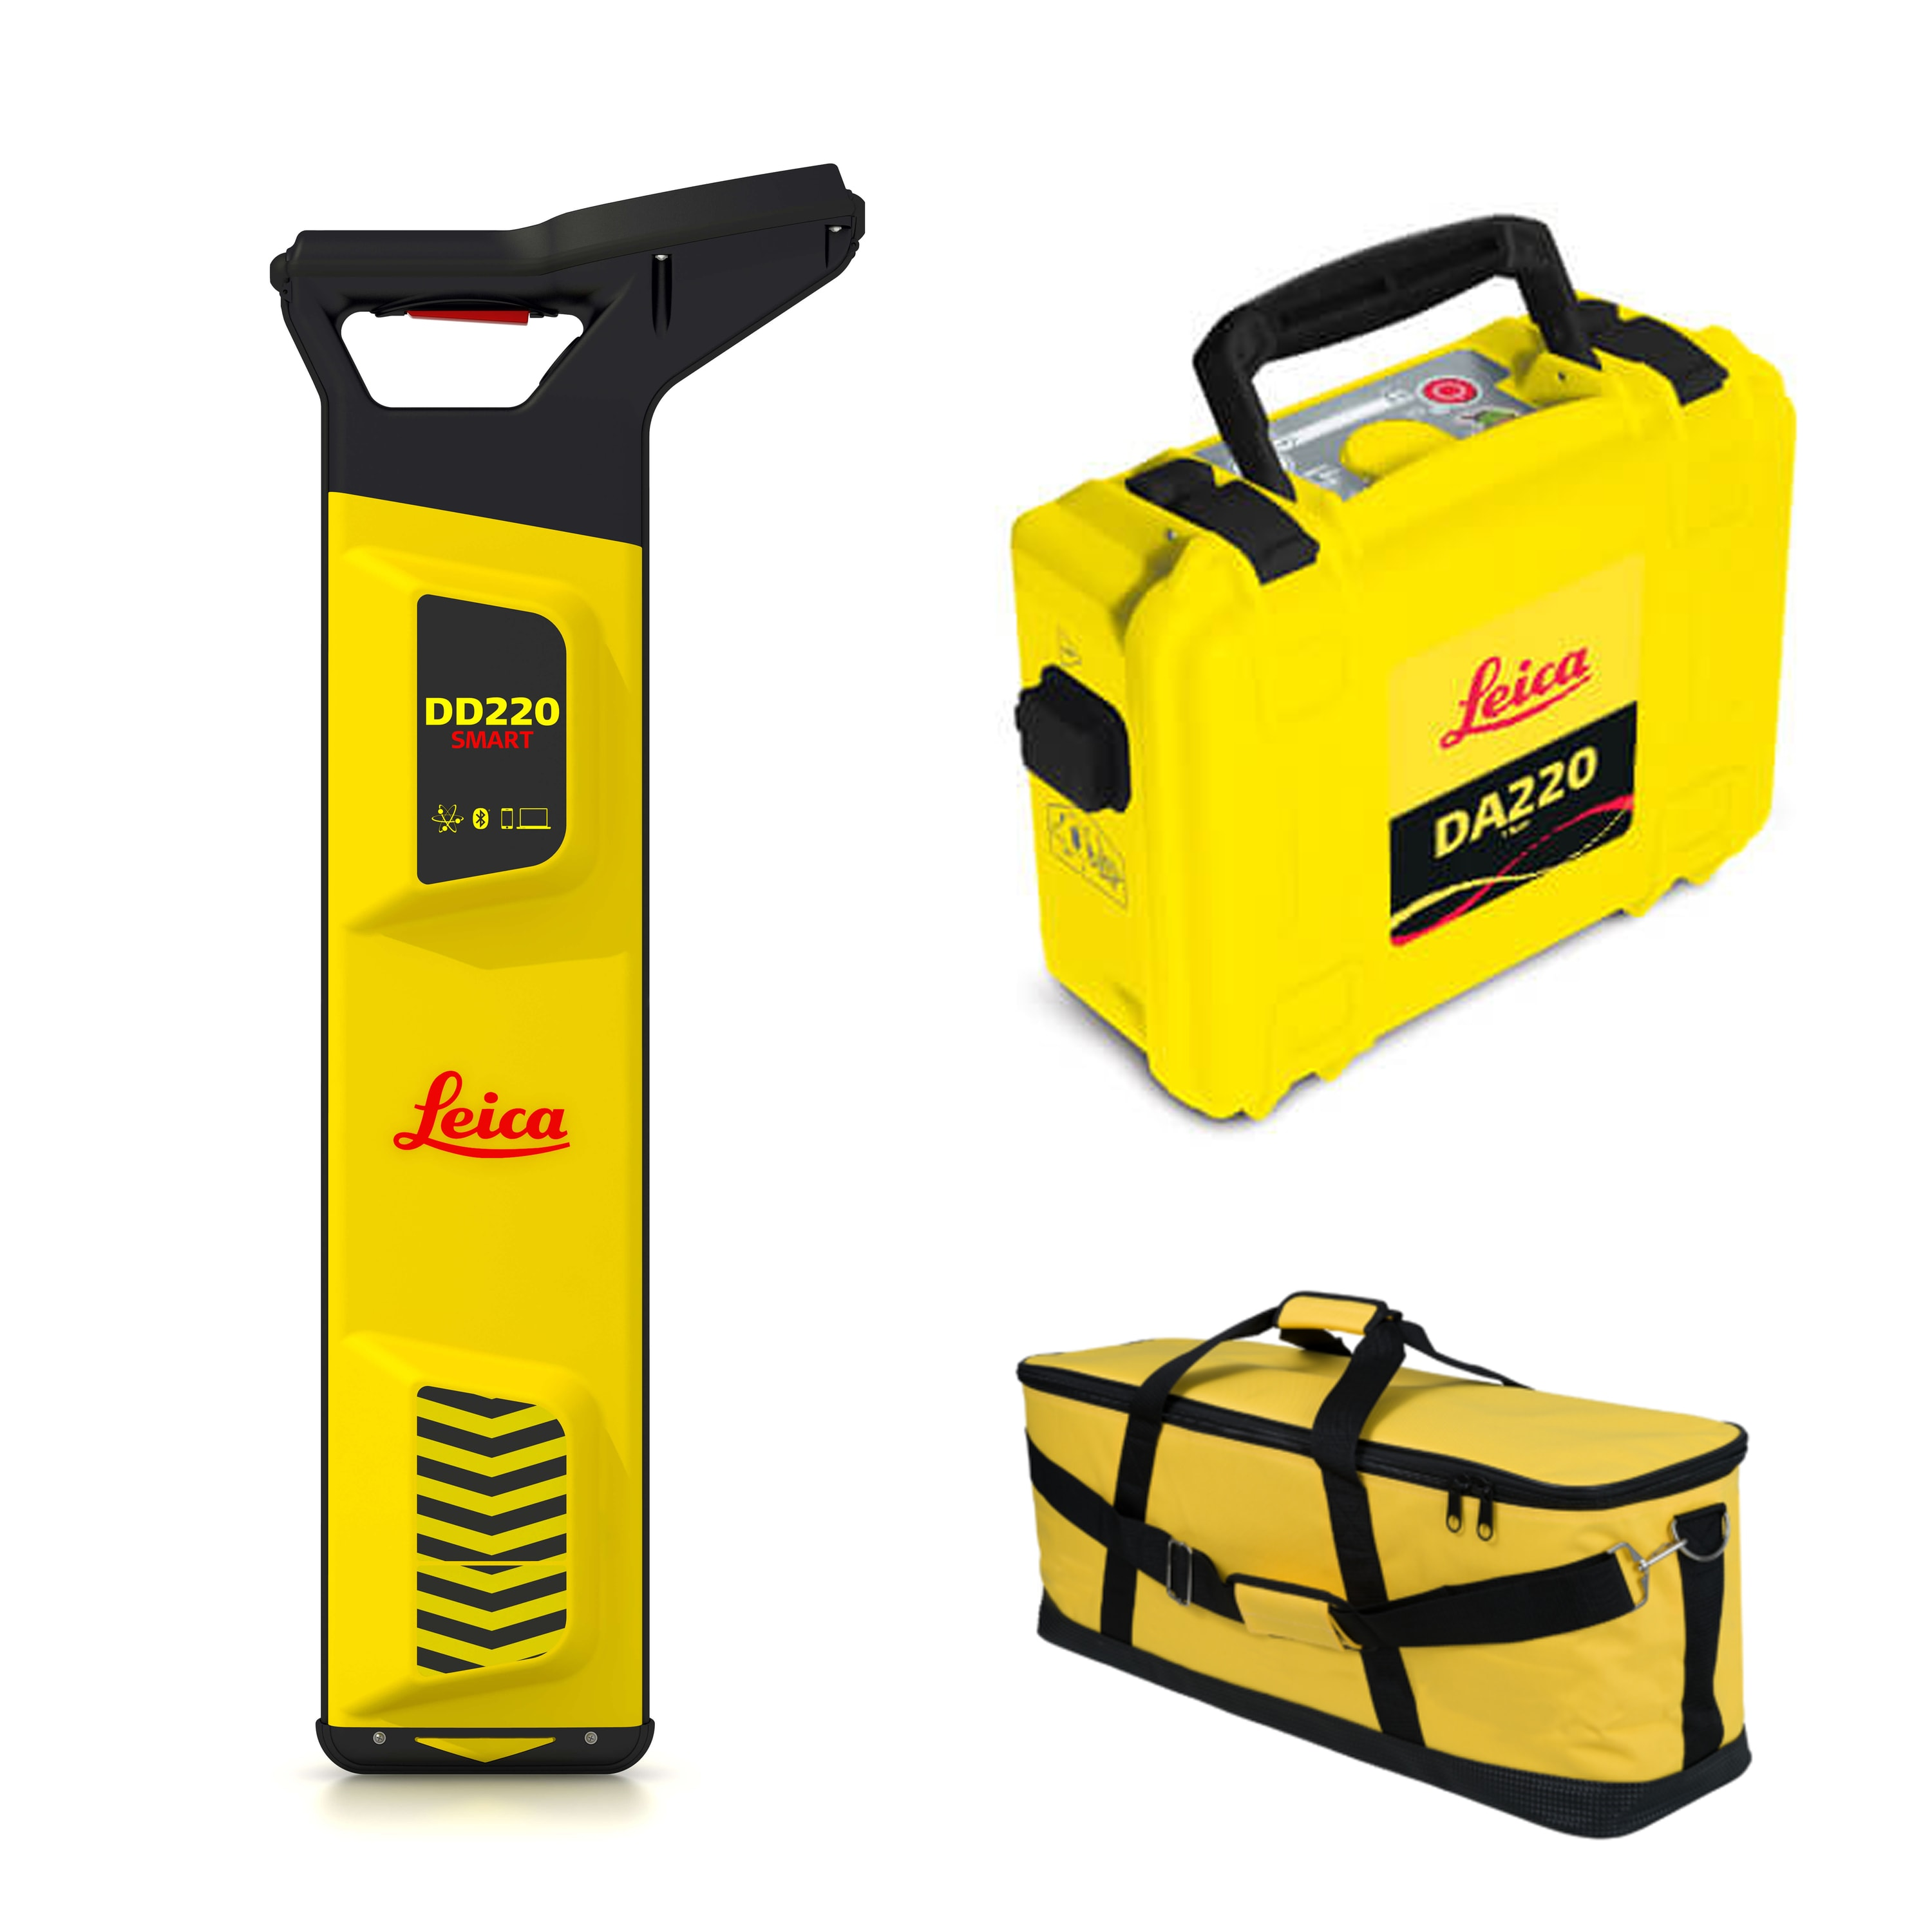 Leica Detect DD220 Smart package.